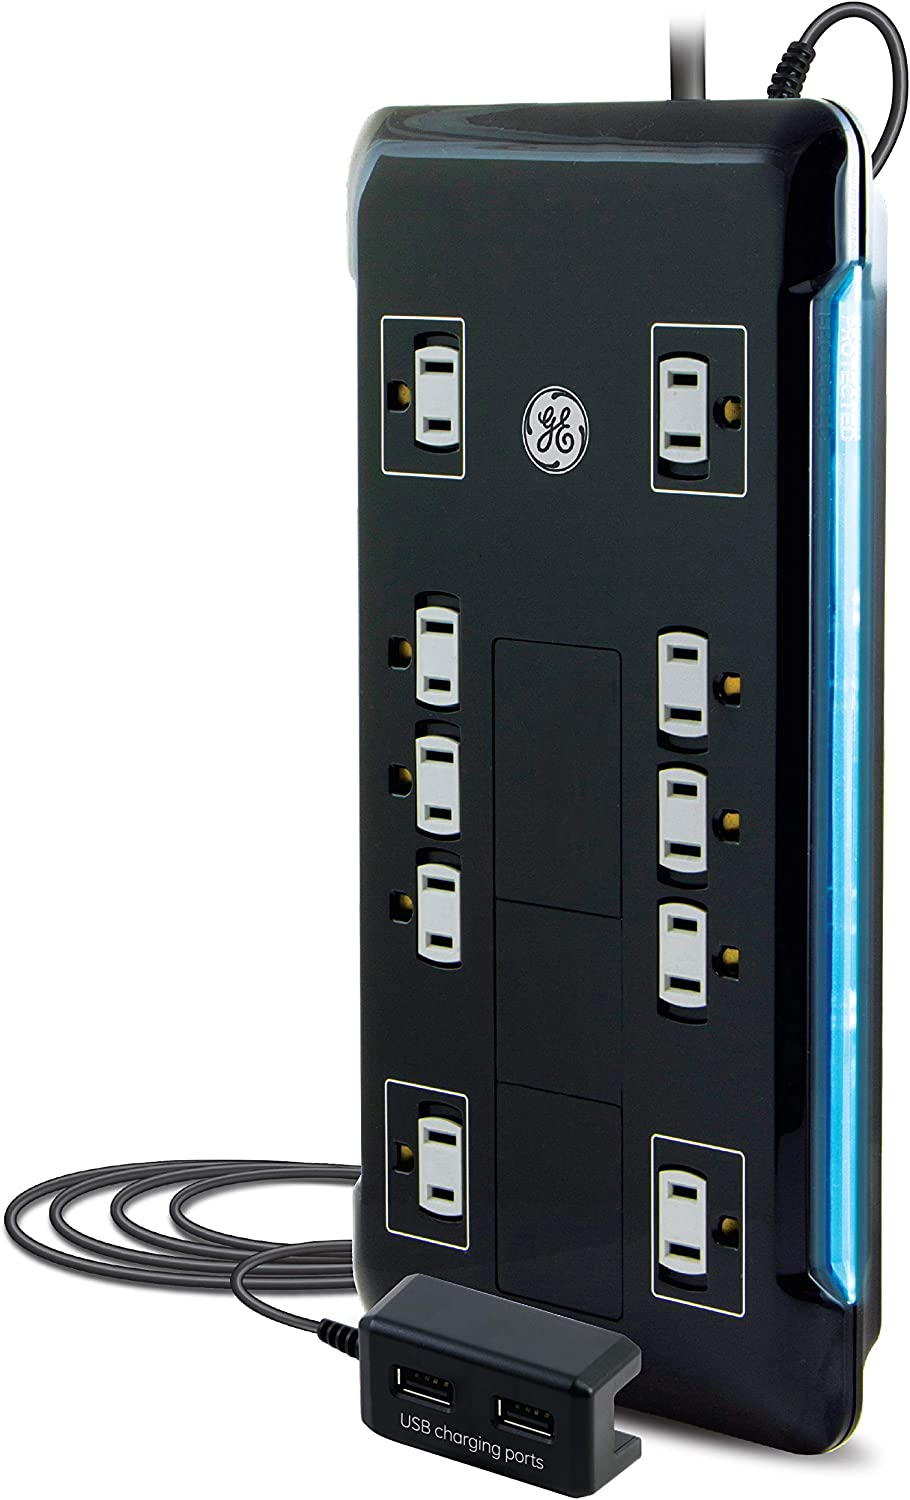 GE Surge Protector, 10 Outlet Power Strip, 2 USB Ports, Long 4ft Power Cord, Flat Plug, Power Filter, Circuit Breaker, 2880 Joules, Warranty, Black, 32646